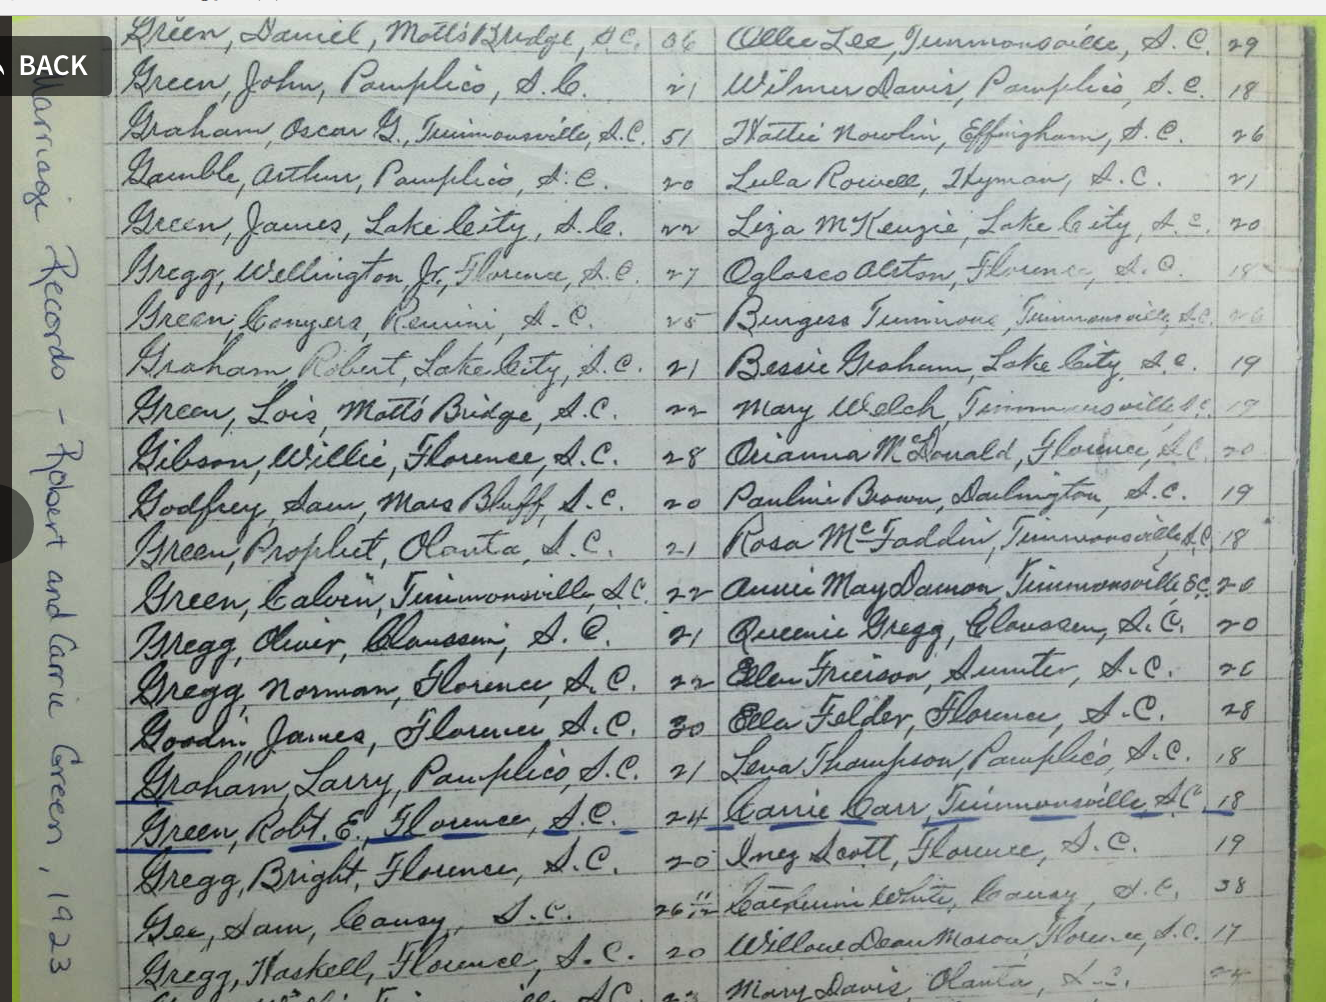 Robert Green and Carrie Carr listed in the Florence County, SC Marriage index, September 1923.